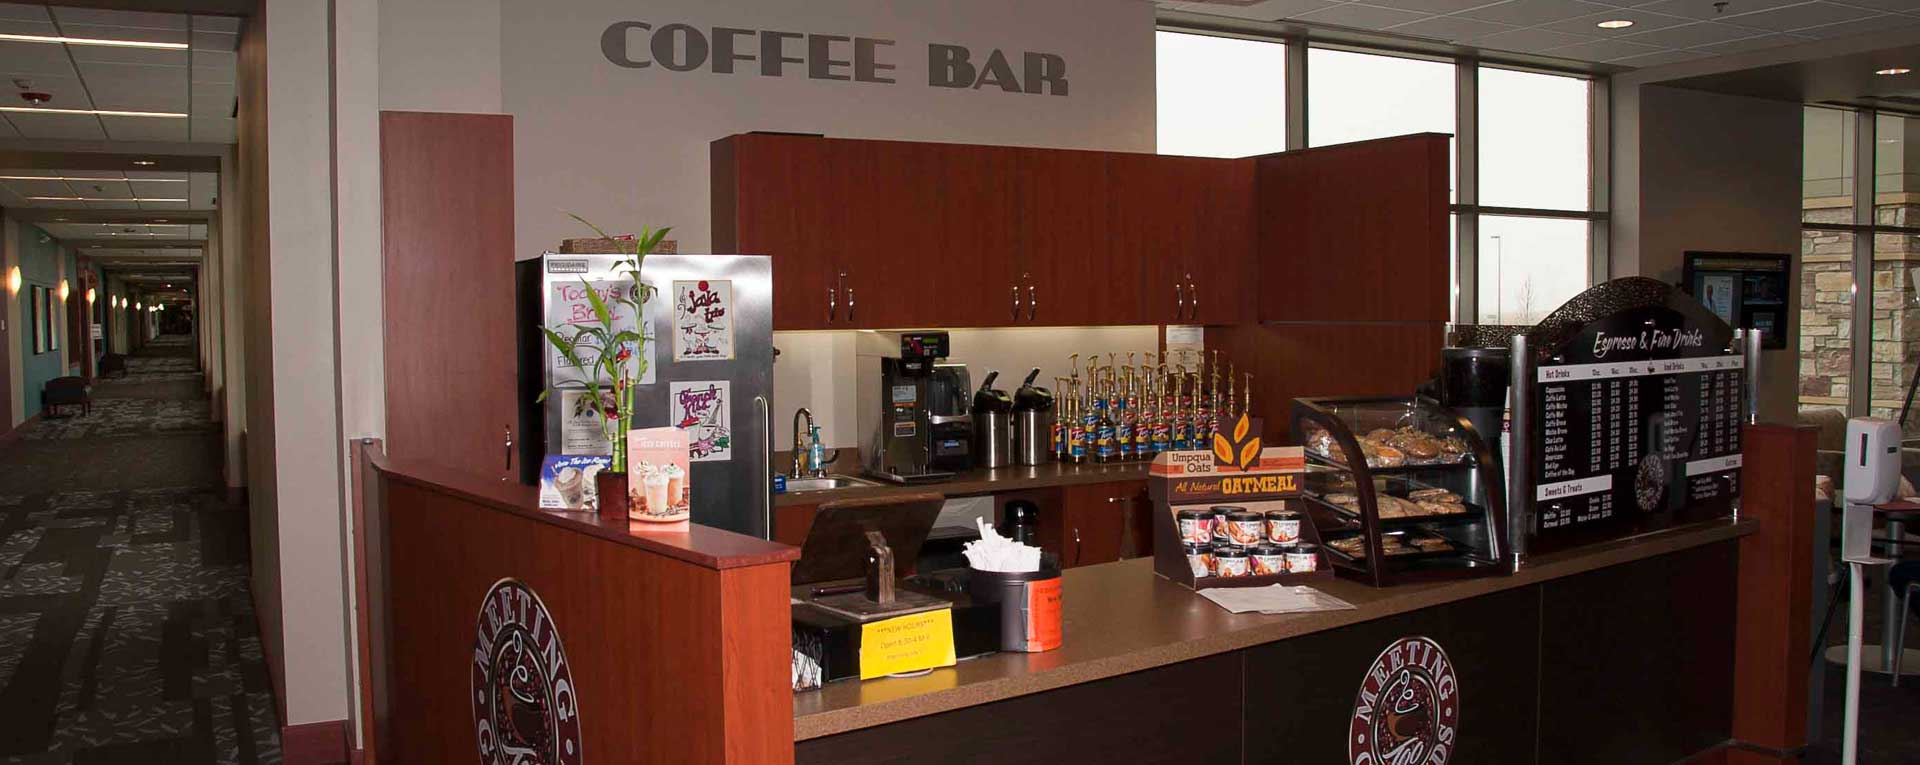 Jamestown Medical Building Coffee Bar